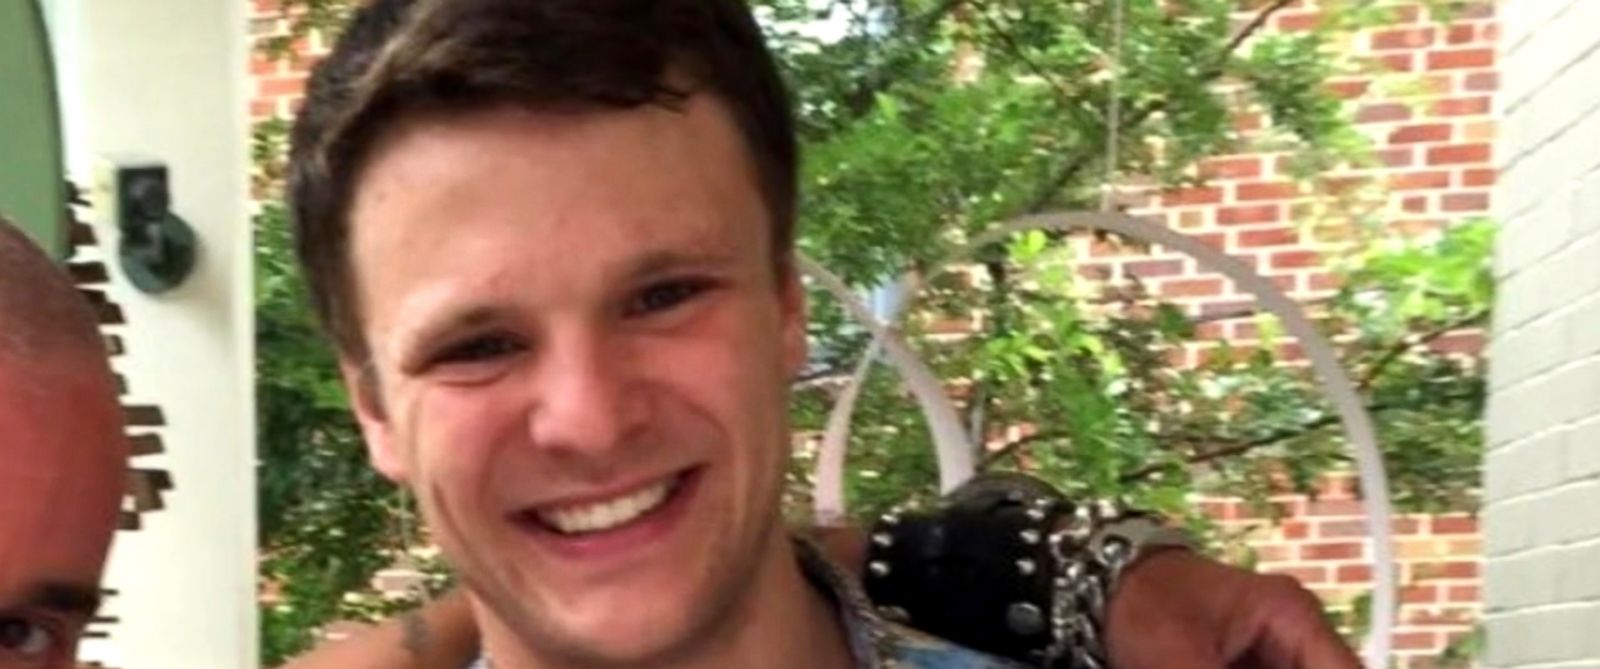 VIDEO: Otto Warmbier, an American college student who died just days after North Korea released him from prison while he was in a coma, was mourned at his funeral in his hometown of Cincinnati on Thursday.